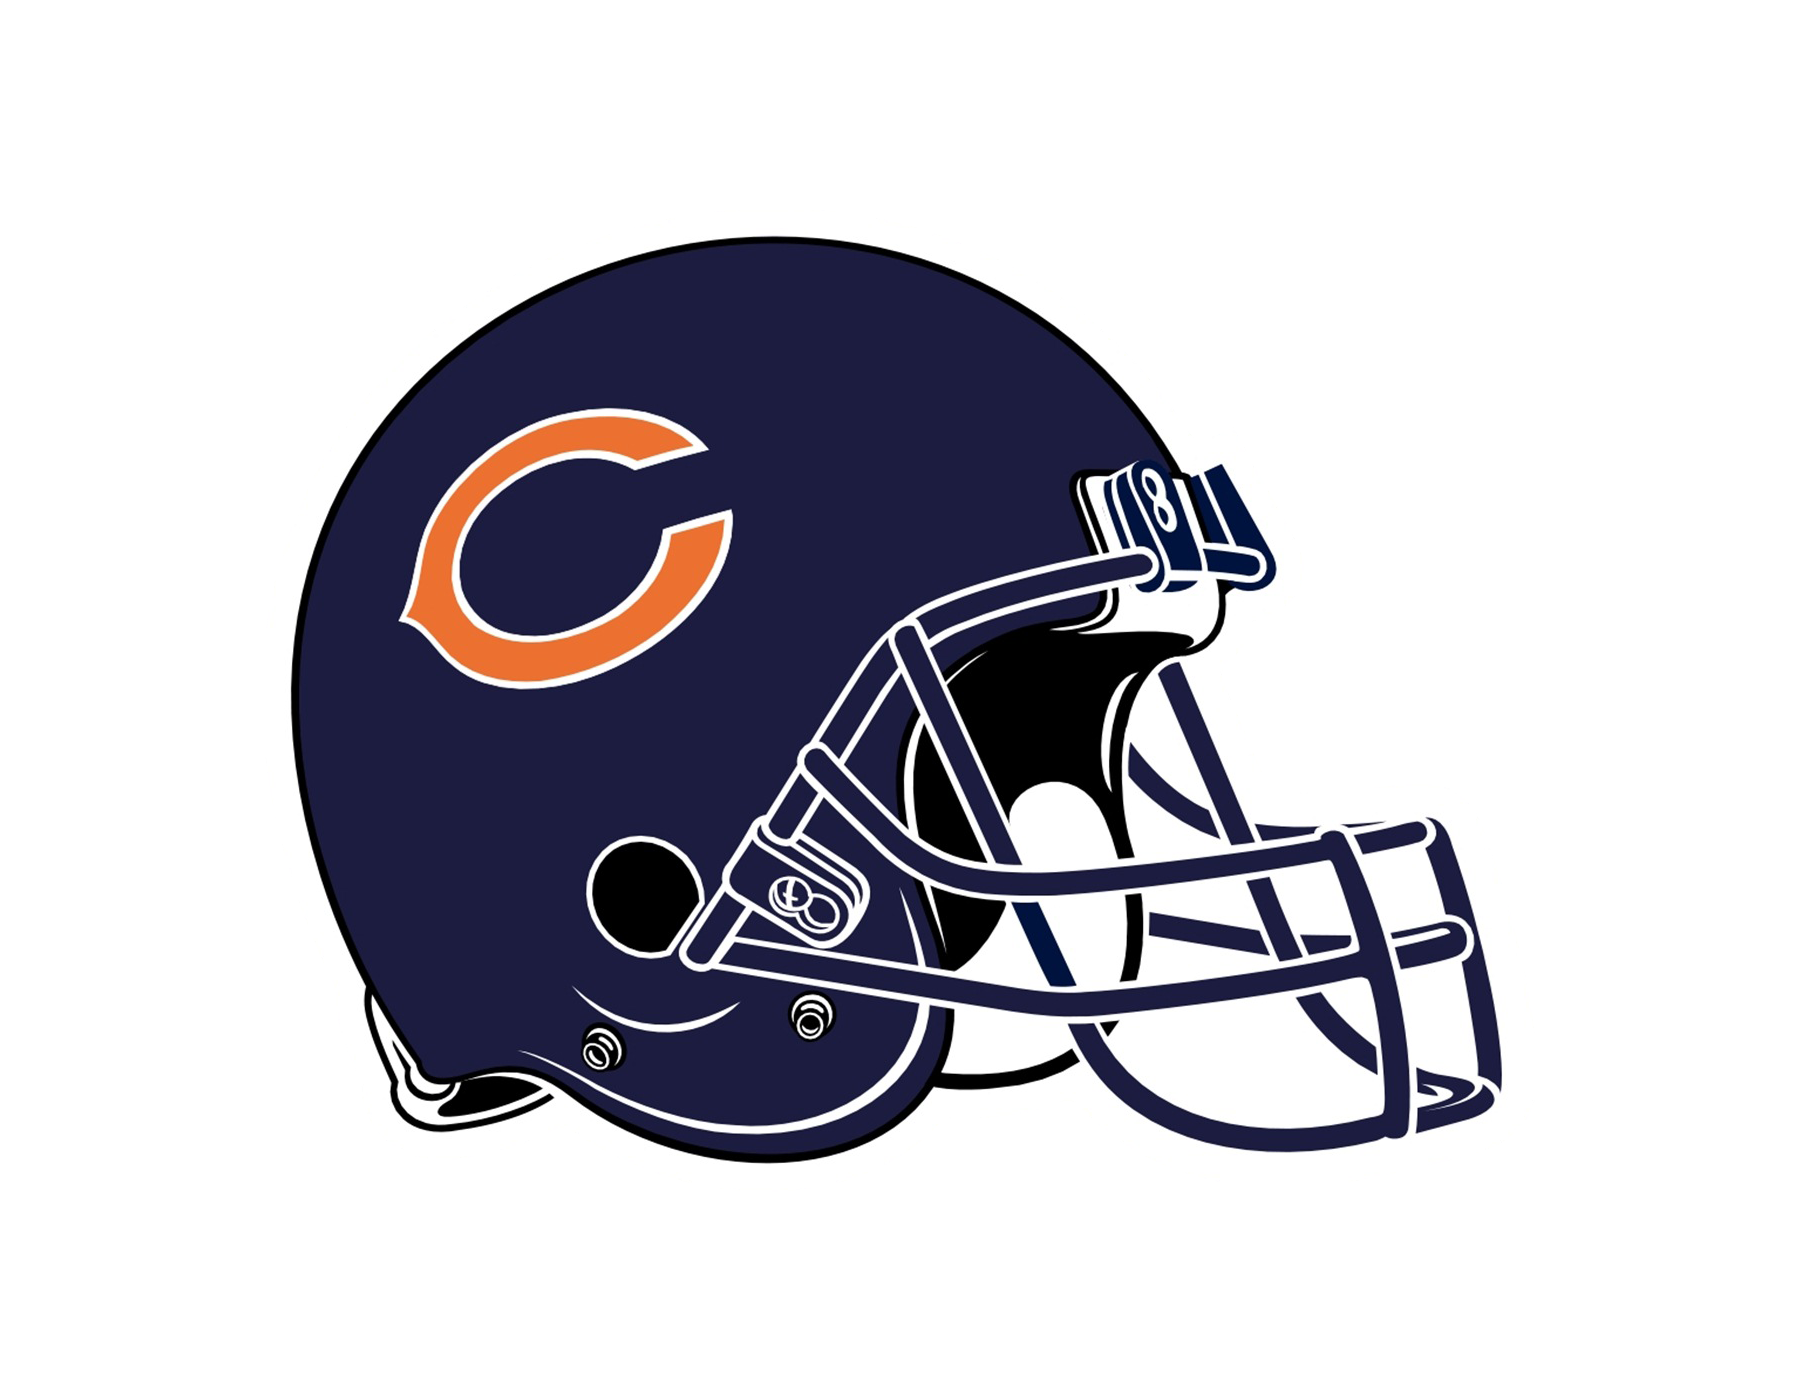 chicago bears logo png transparent svg vector freebie supply rh freebiesupply com Chicago Bears Logo Black and White chicago bears logo pictures download